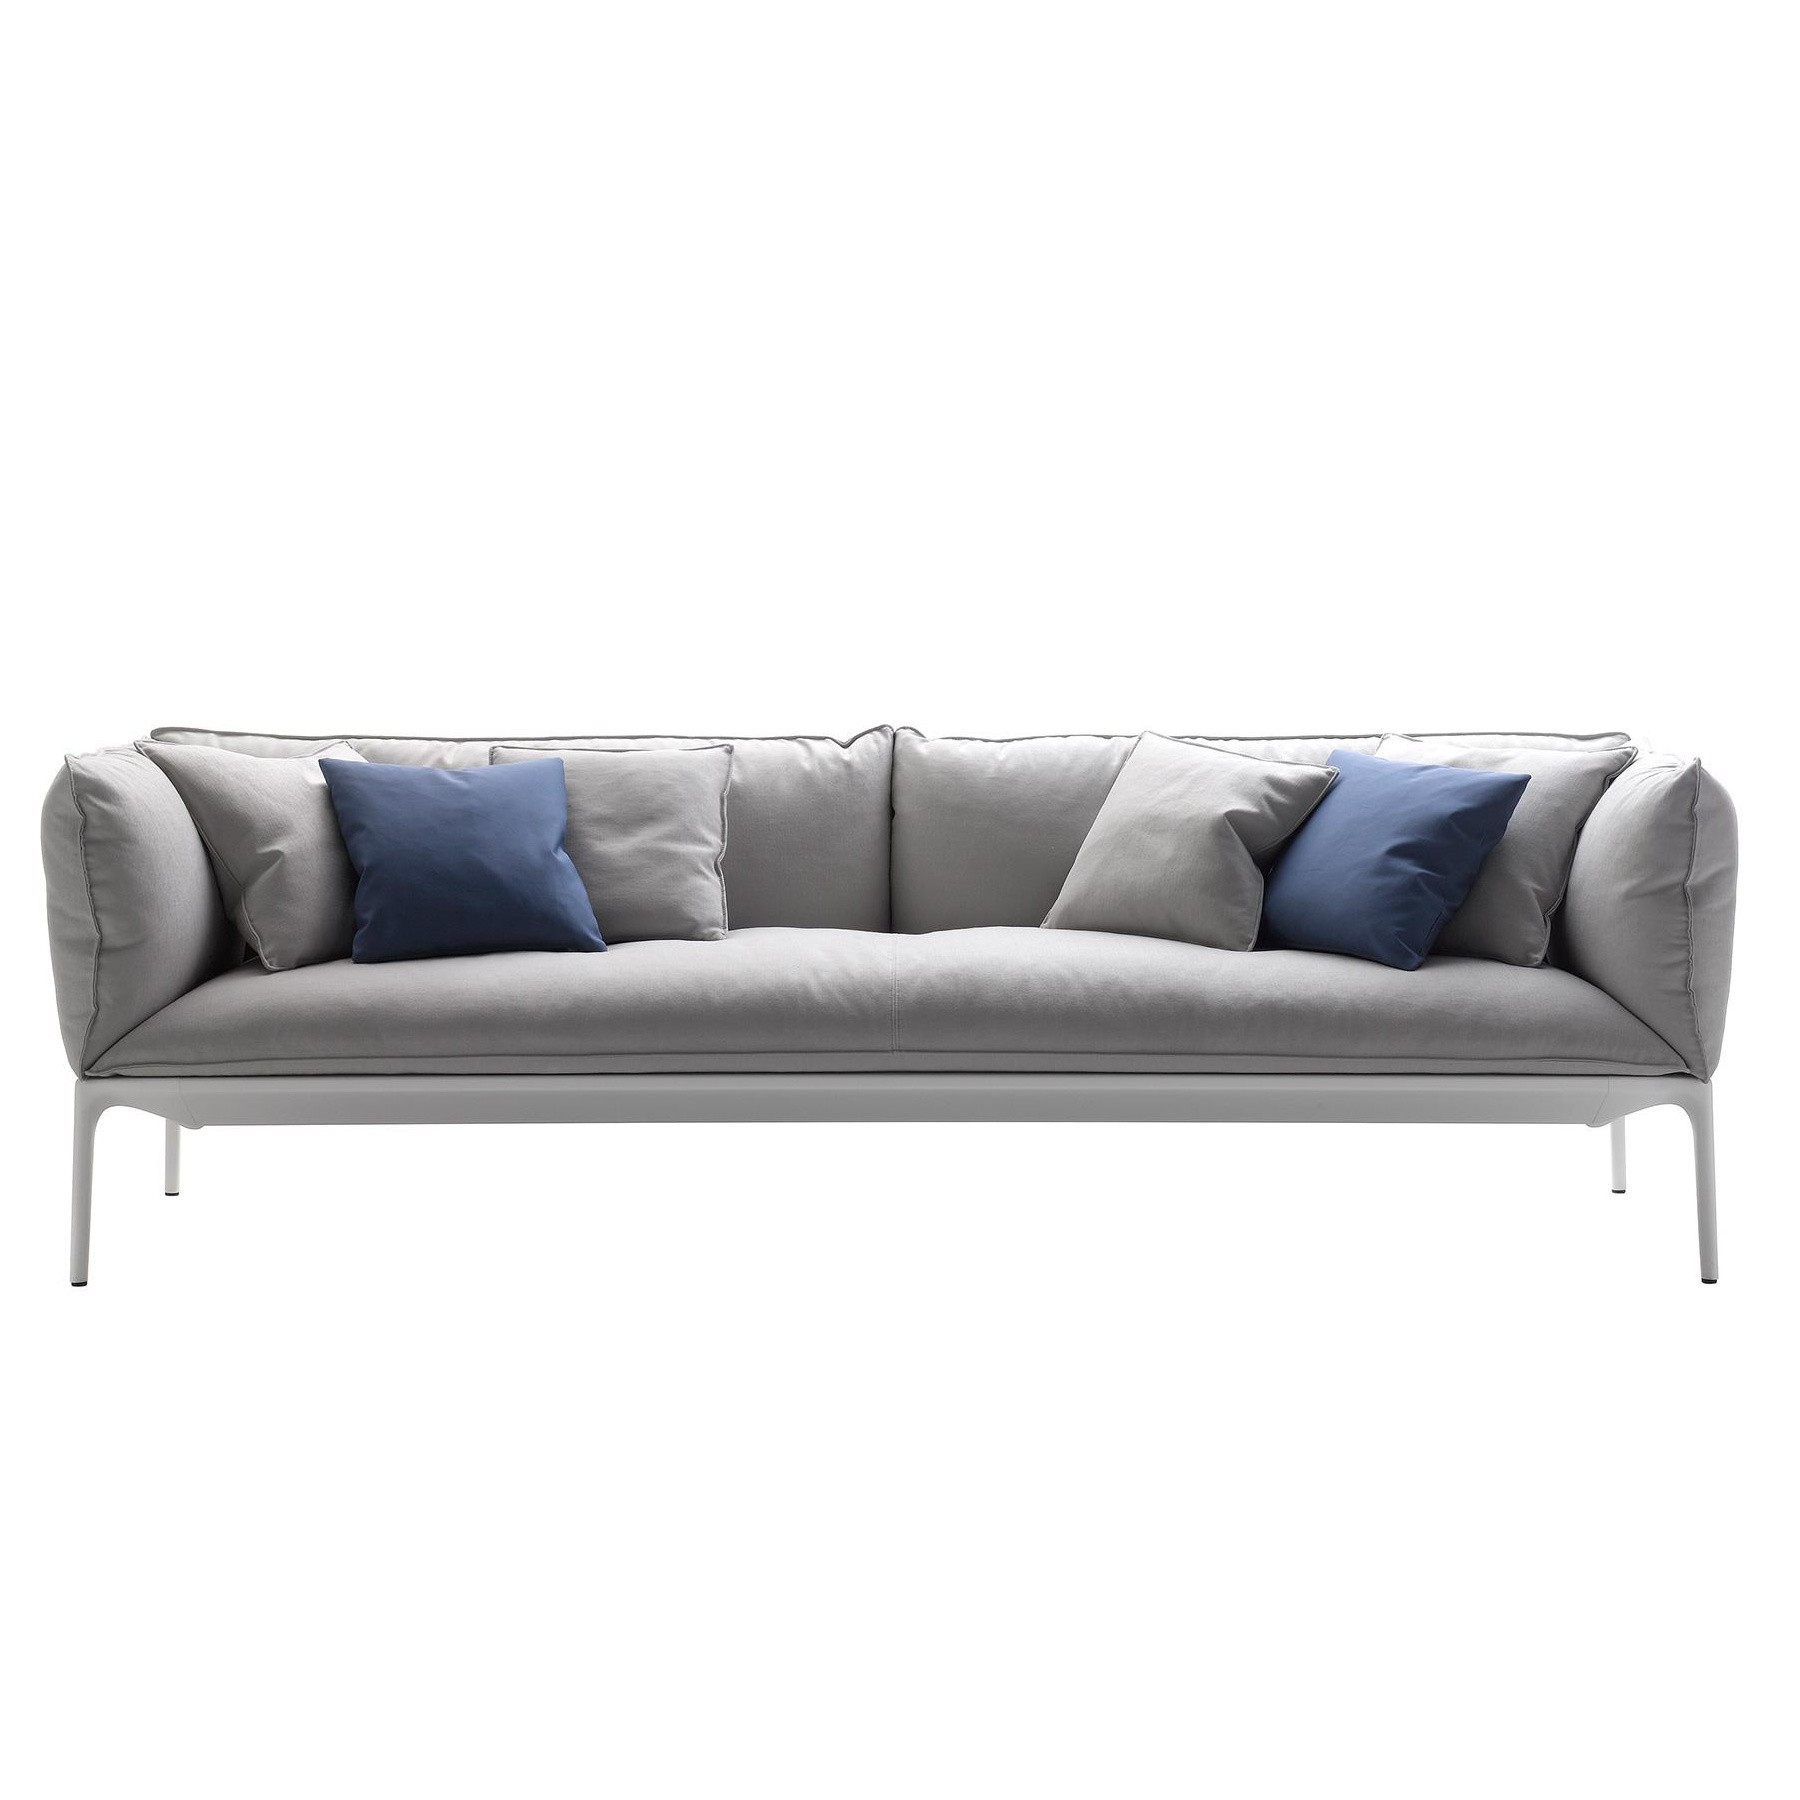 Couchtisch Fabric Yale S3 Sofa 3 Seater Down Filling